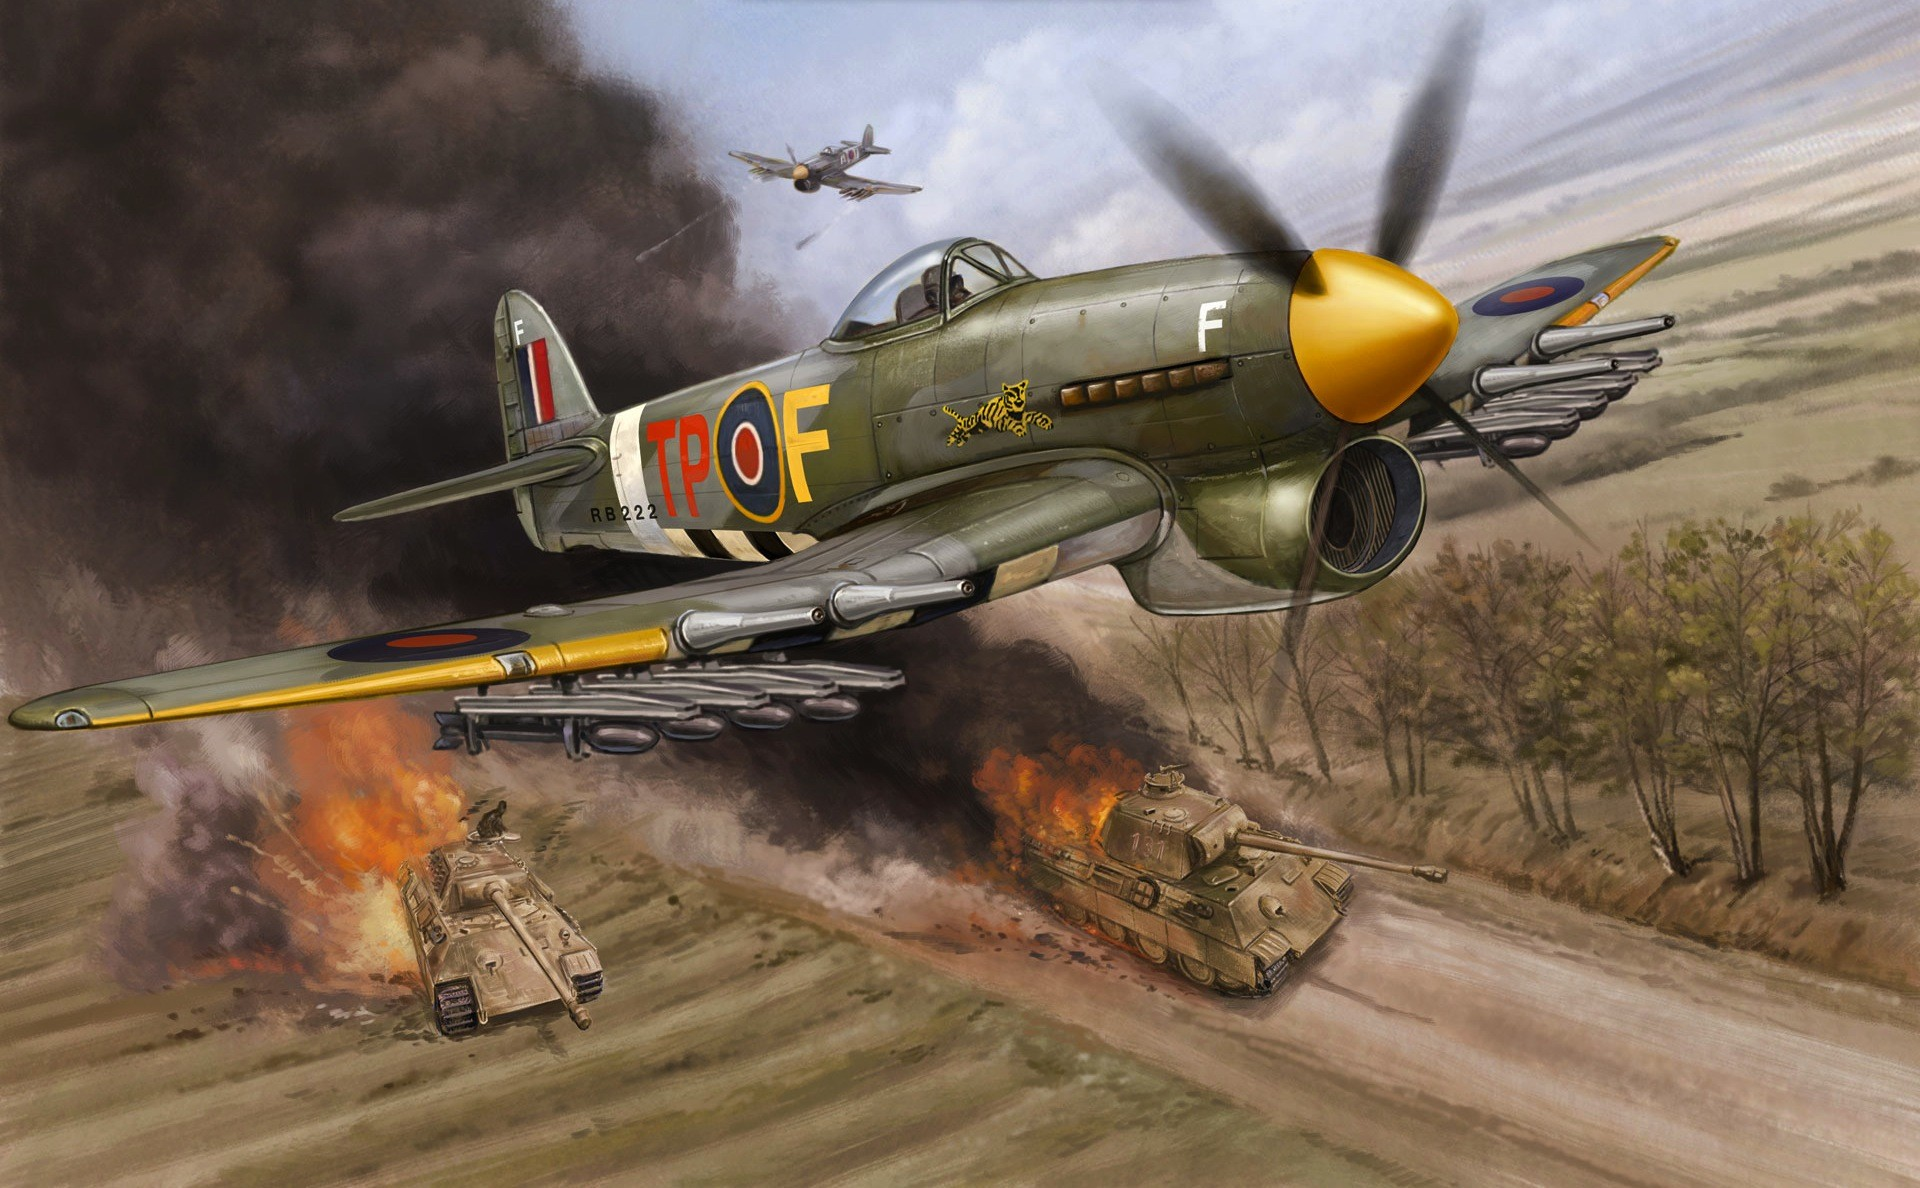 General 1920x1188 World War II airplane aircraft Hawker Typhoon military military aircraft D-Day